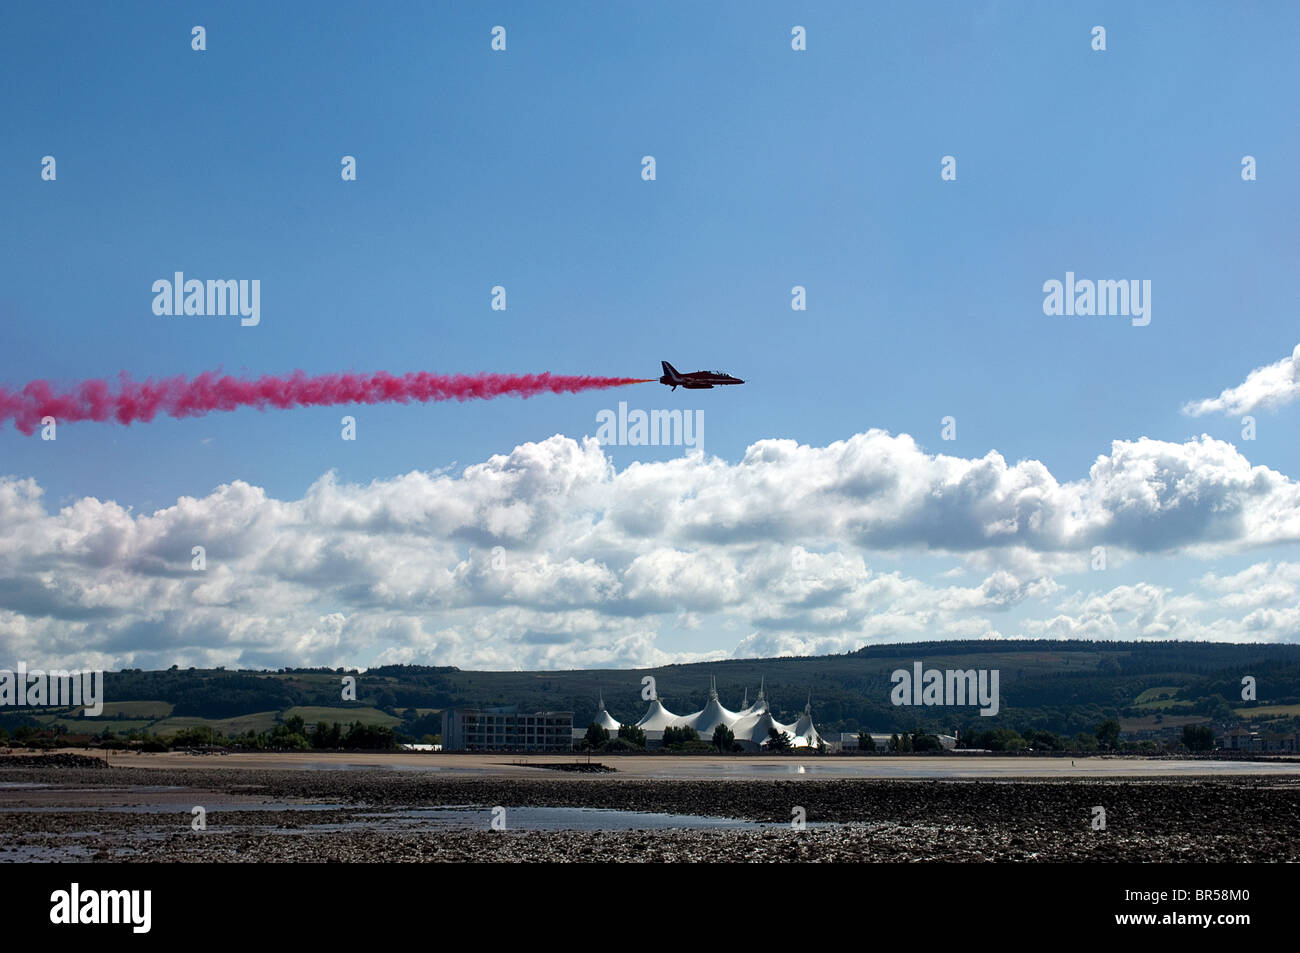 Single Hawk Jet of the RAF Aerobatic team, the Red Arrows - Stock Image